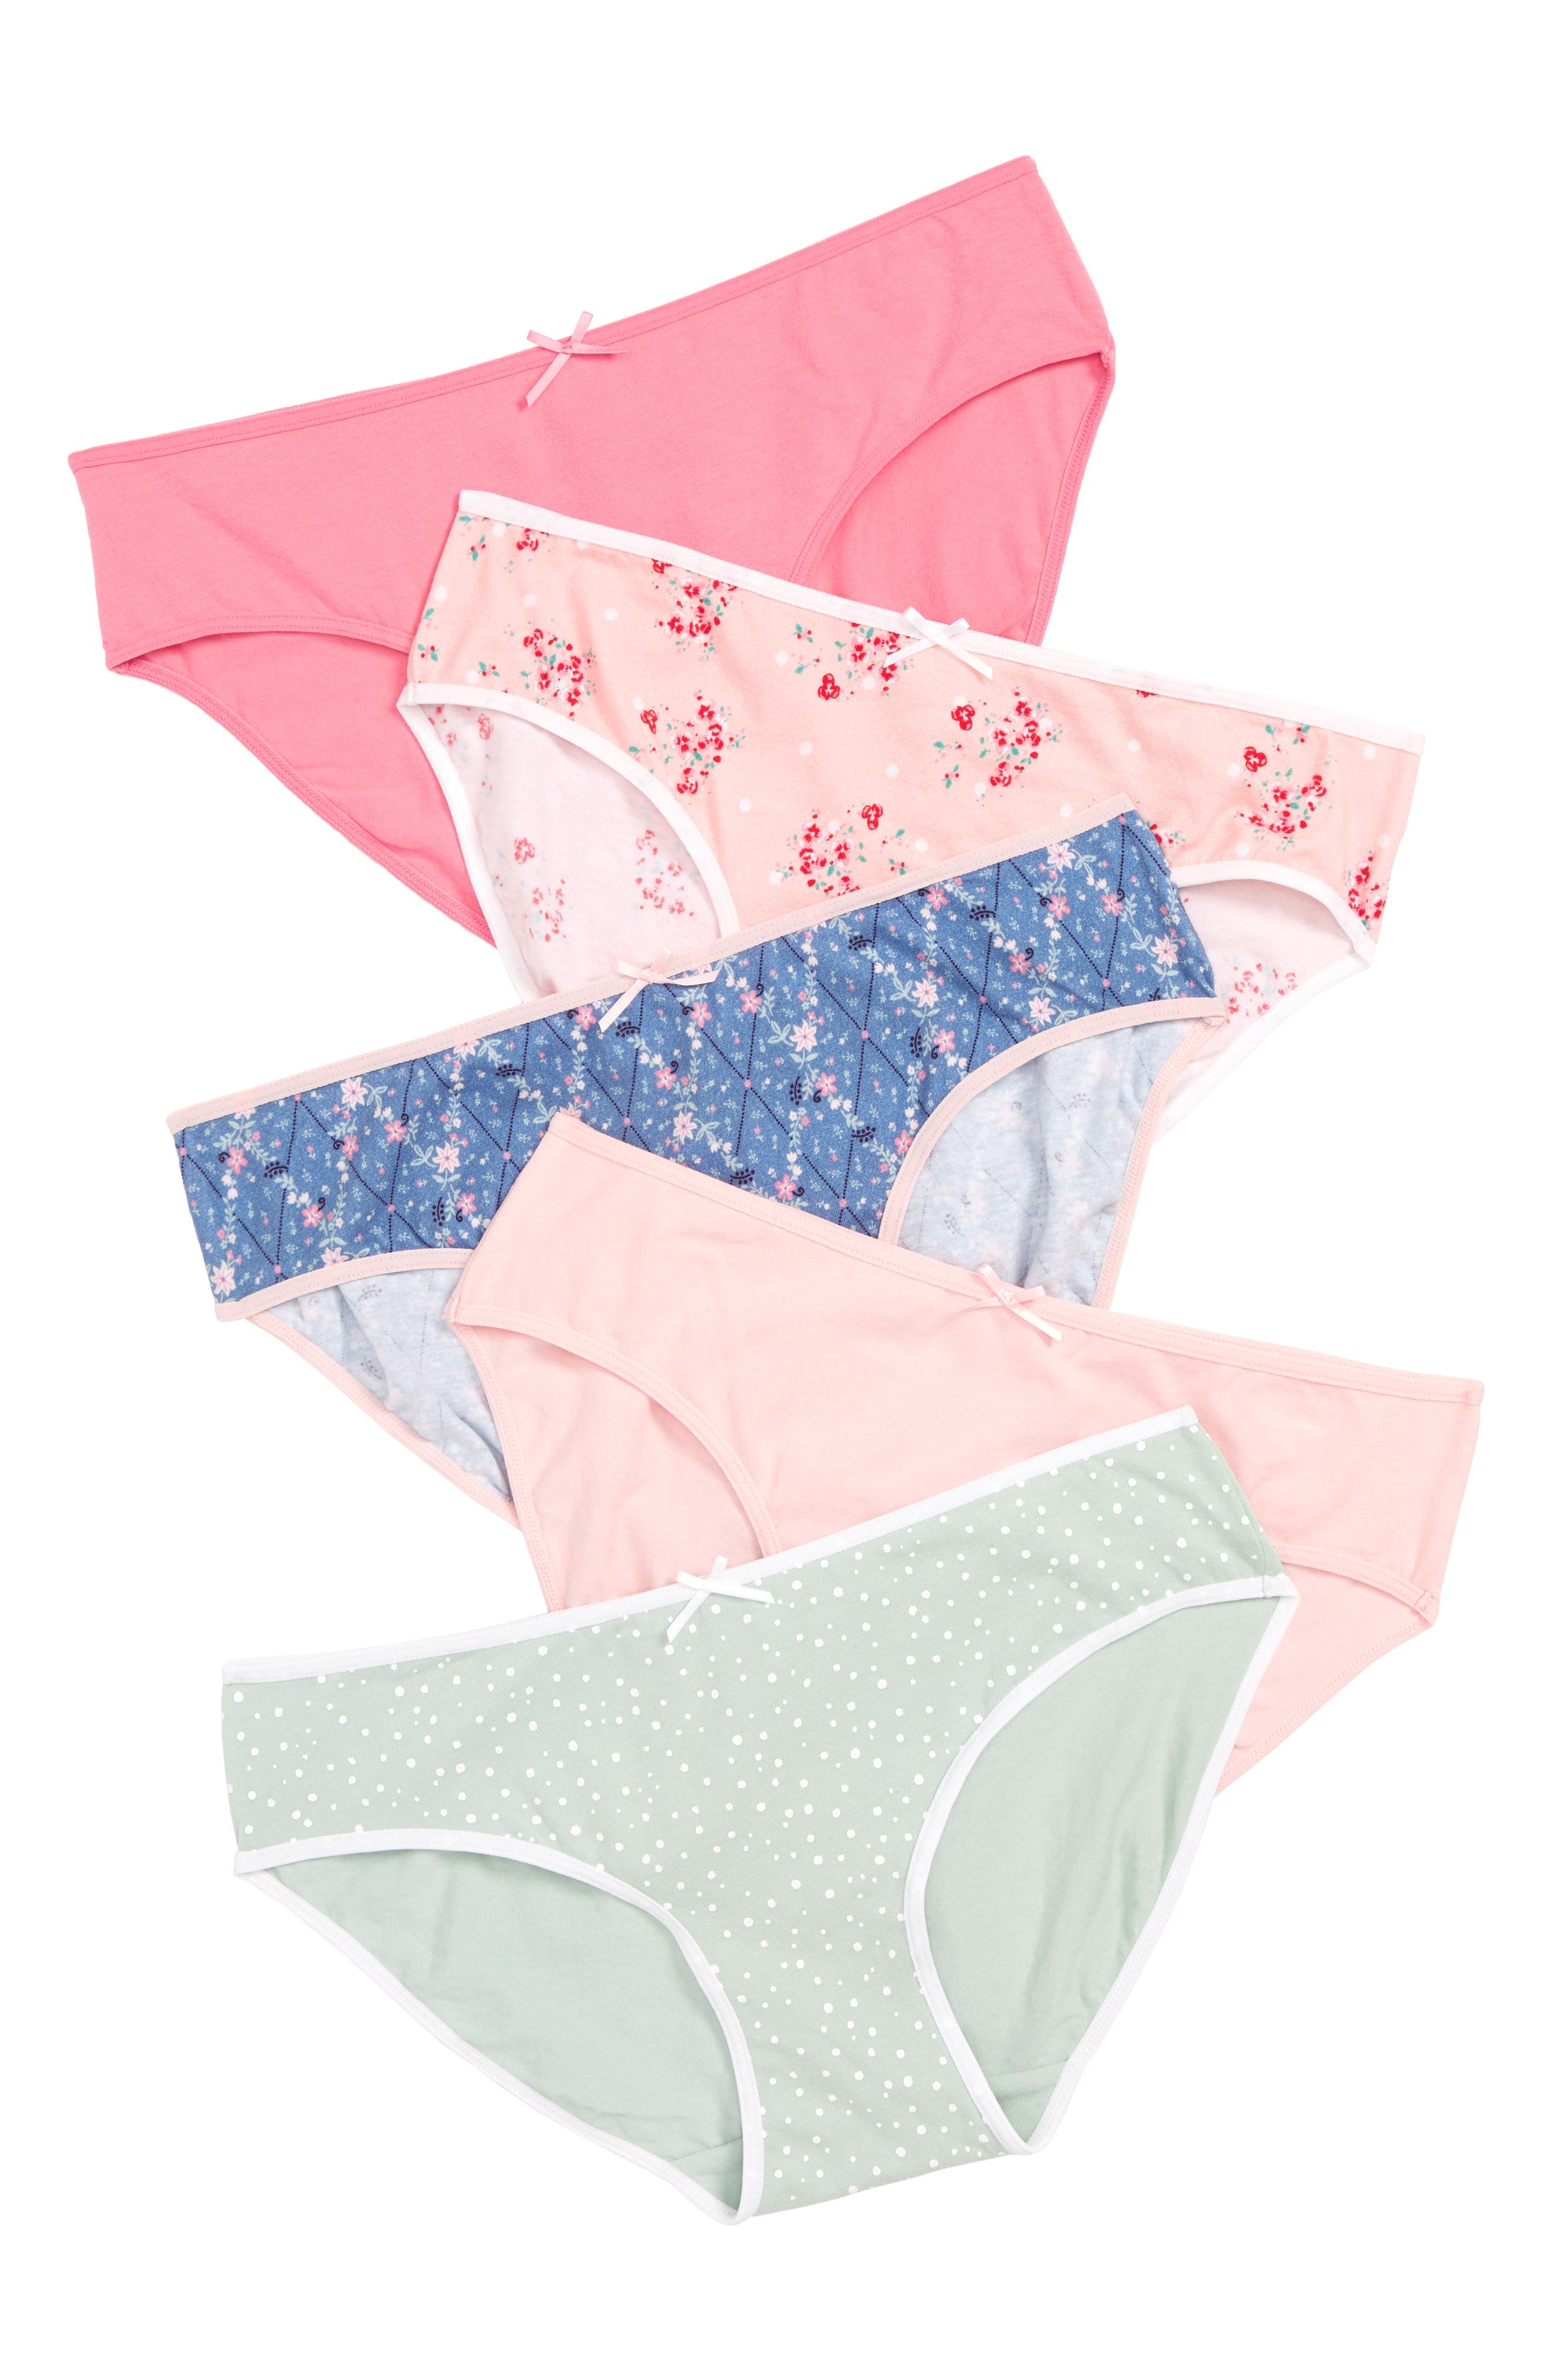 5-Pack Hipster Briefs,                         Main,                         color, DELICATE FLORAL PACK